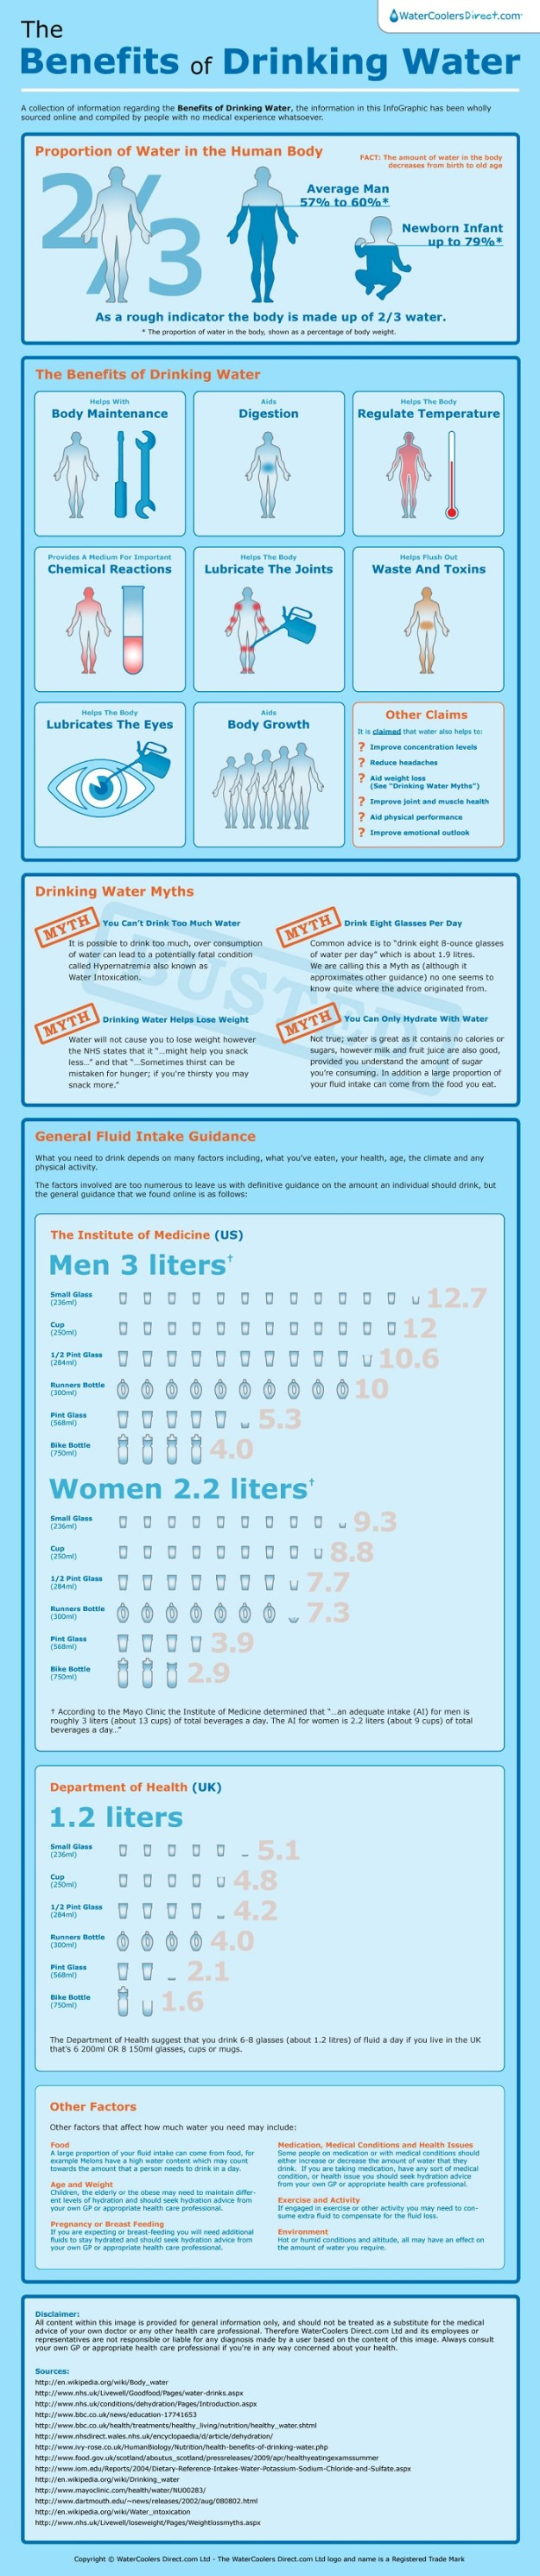 benefits-of-drinking-water-infographic